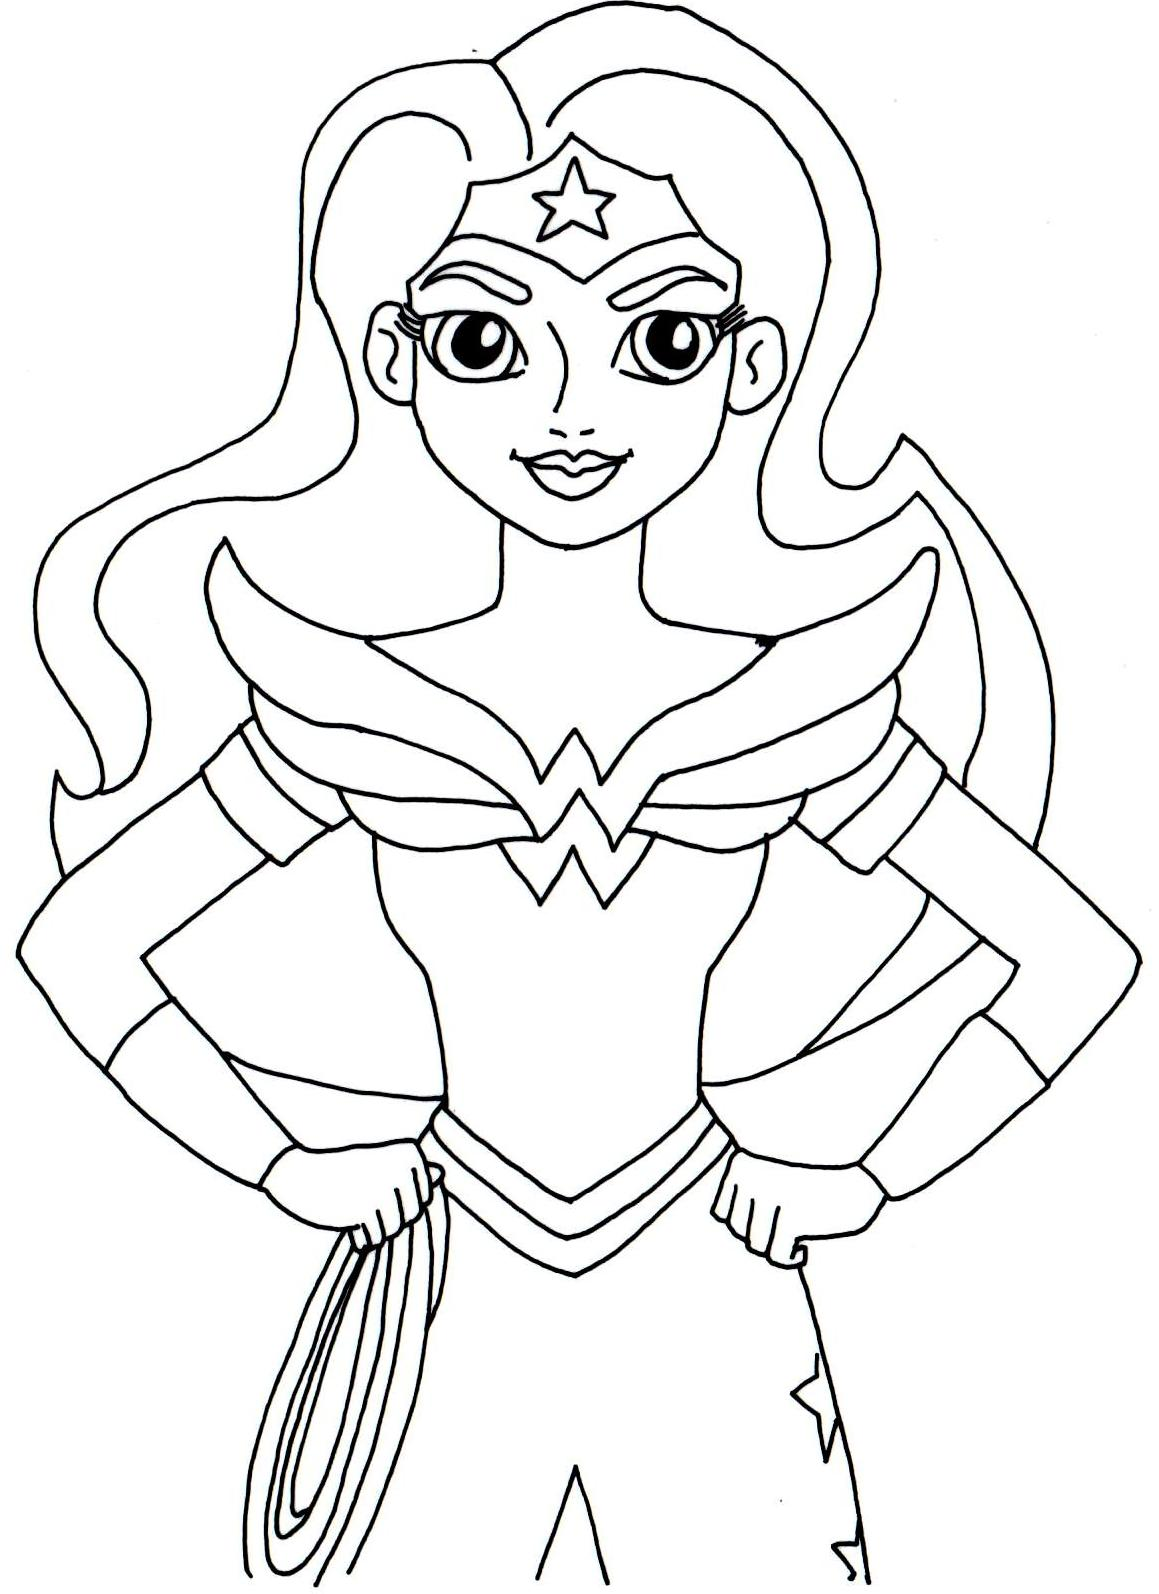 Free Printable Super Hero High Coloring Pages: Wonder